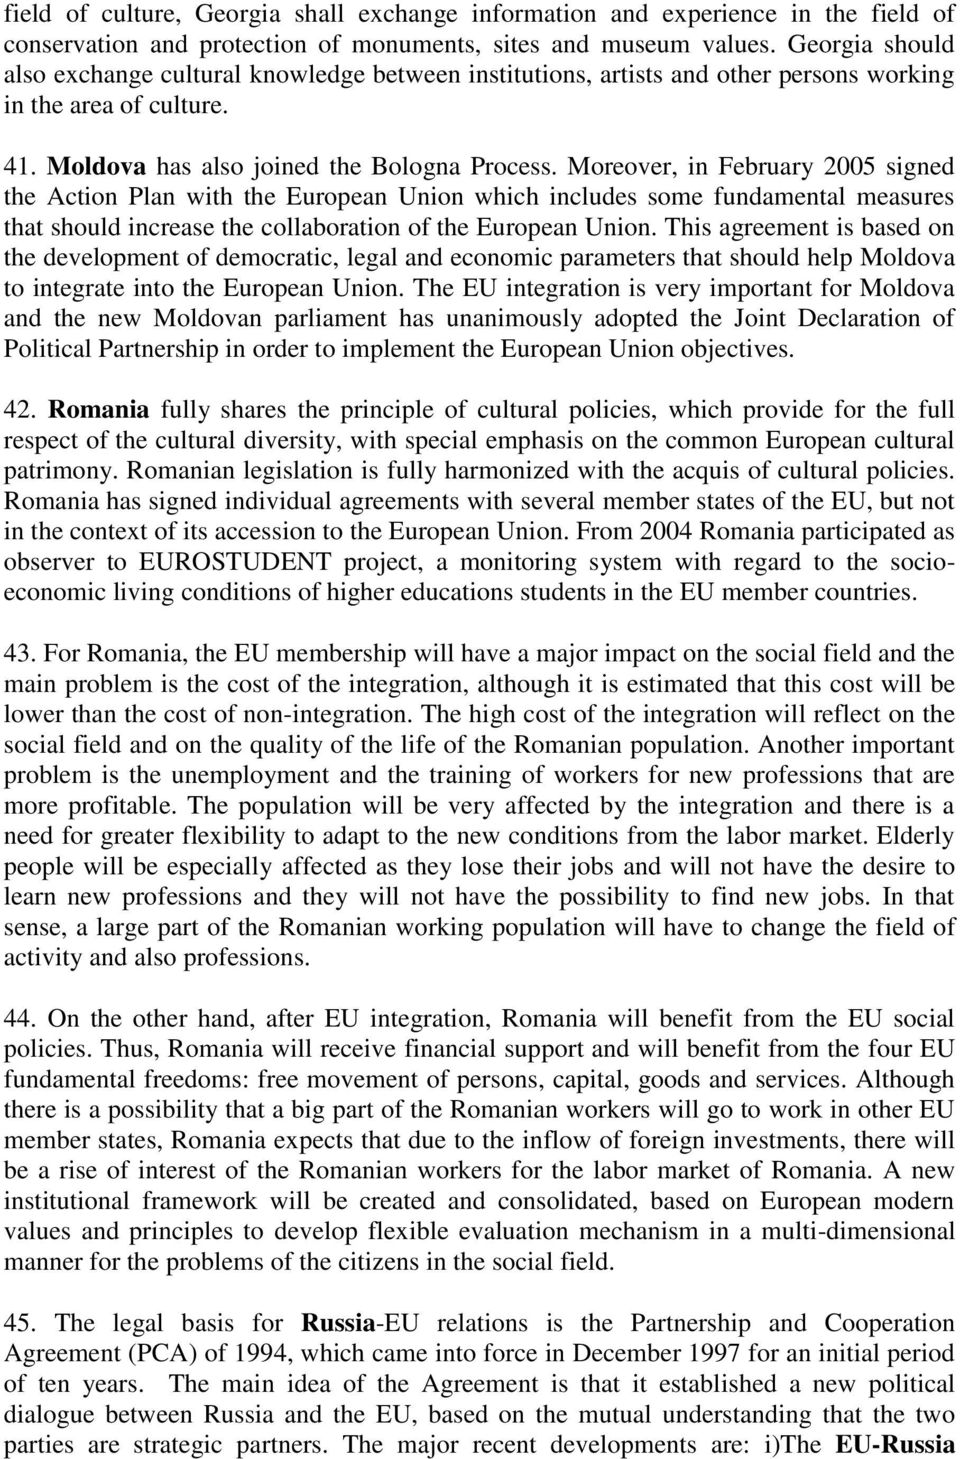 Moreover, in February 2005 signed the Action Plan with the European Union which includes some fundamental measures that should increase the collaboration of the European Union.